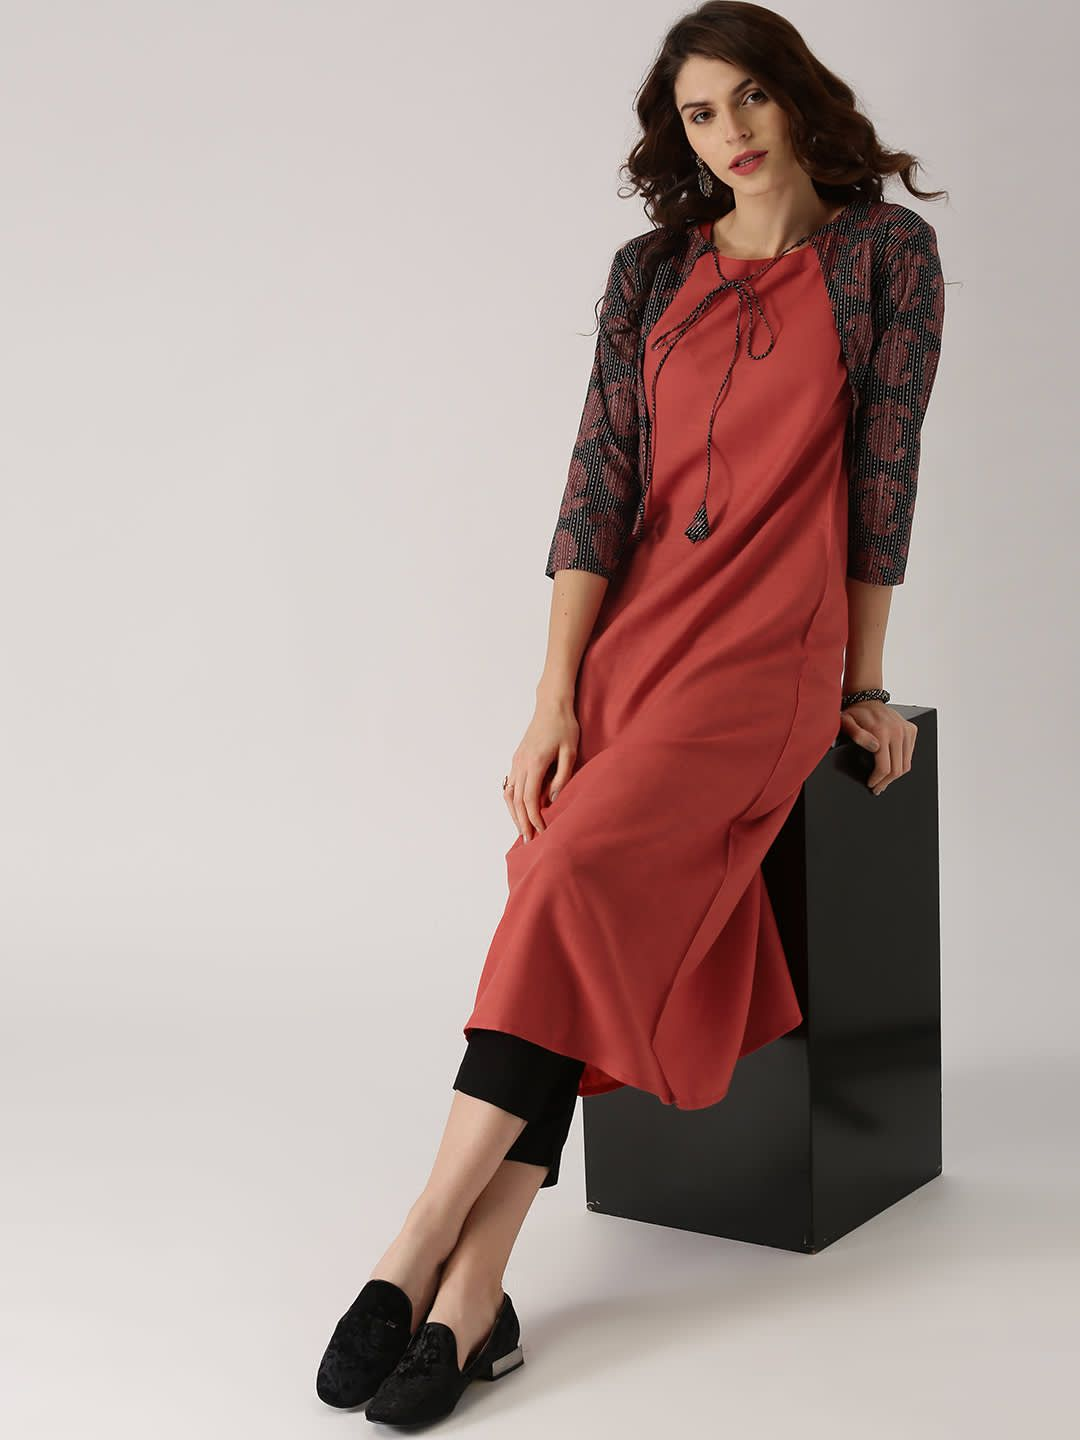 c45d8467d Buy AKS Women Multicoloured Printed A Line Kurta - - Apparel for Women from  AKS at Rs. 899